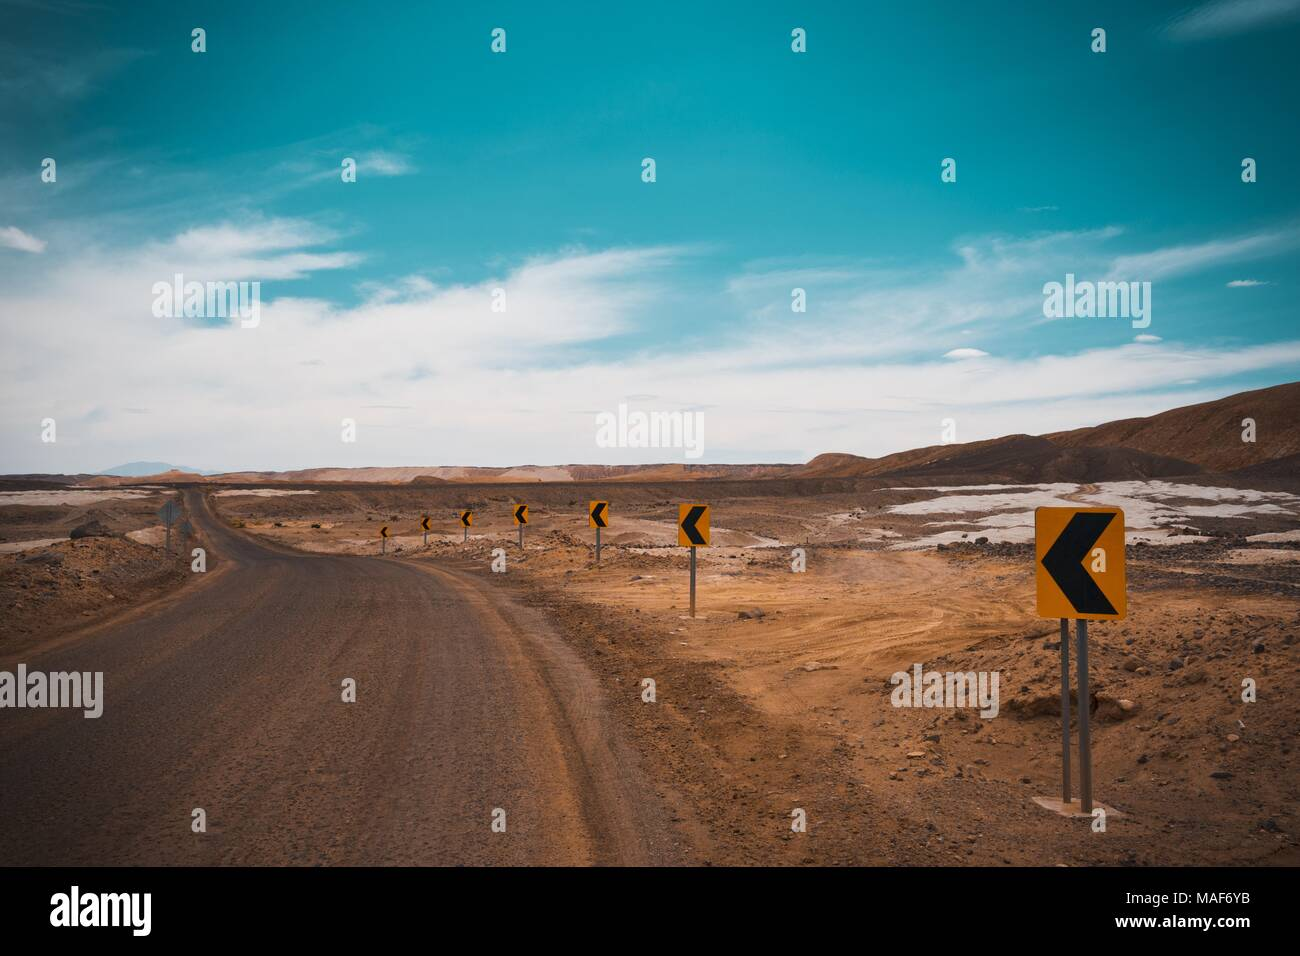 Atacama, Chile Stockbild